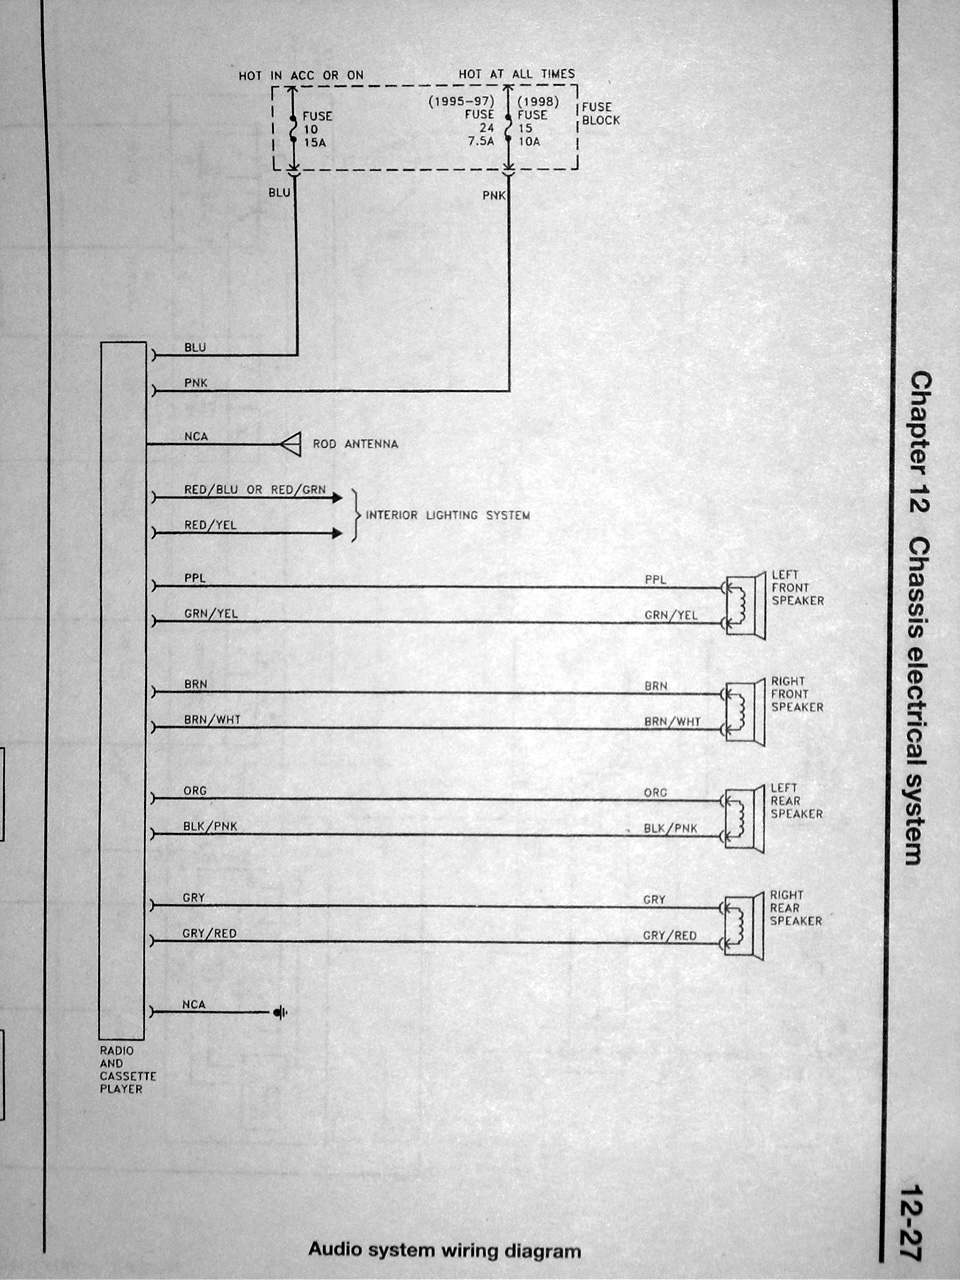 2003 Nissan Maxima Stereo Wiring Diagram from ninety-9.com